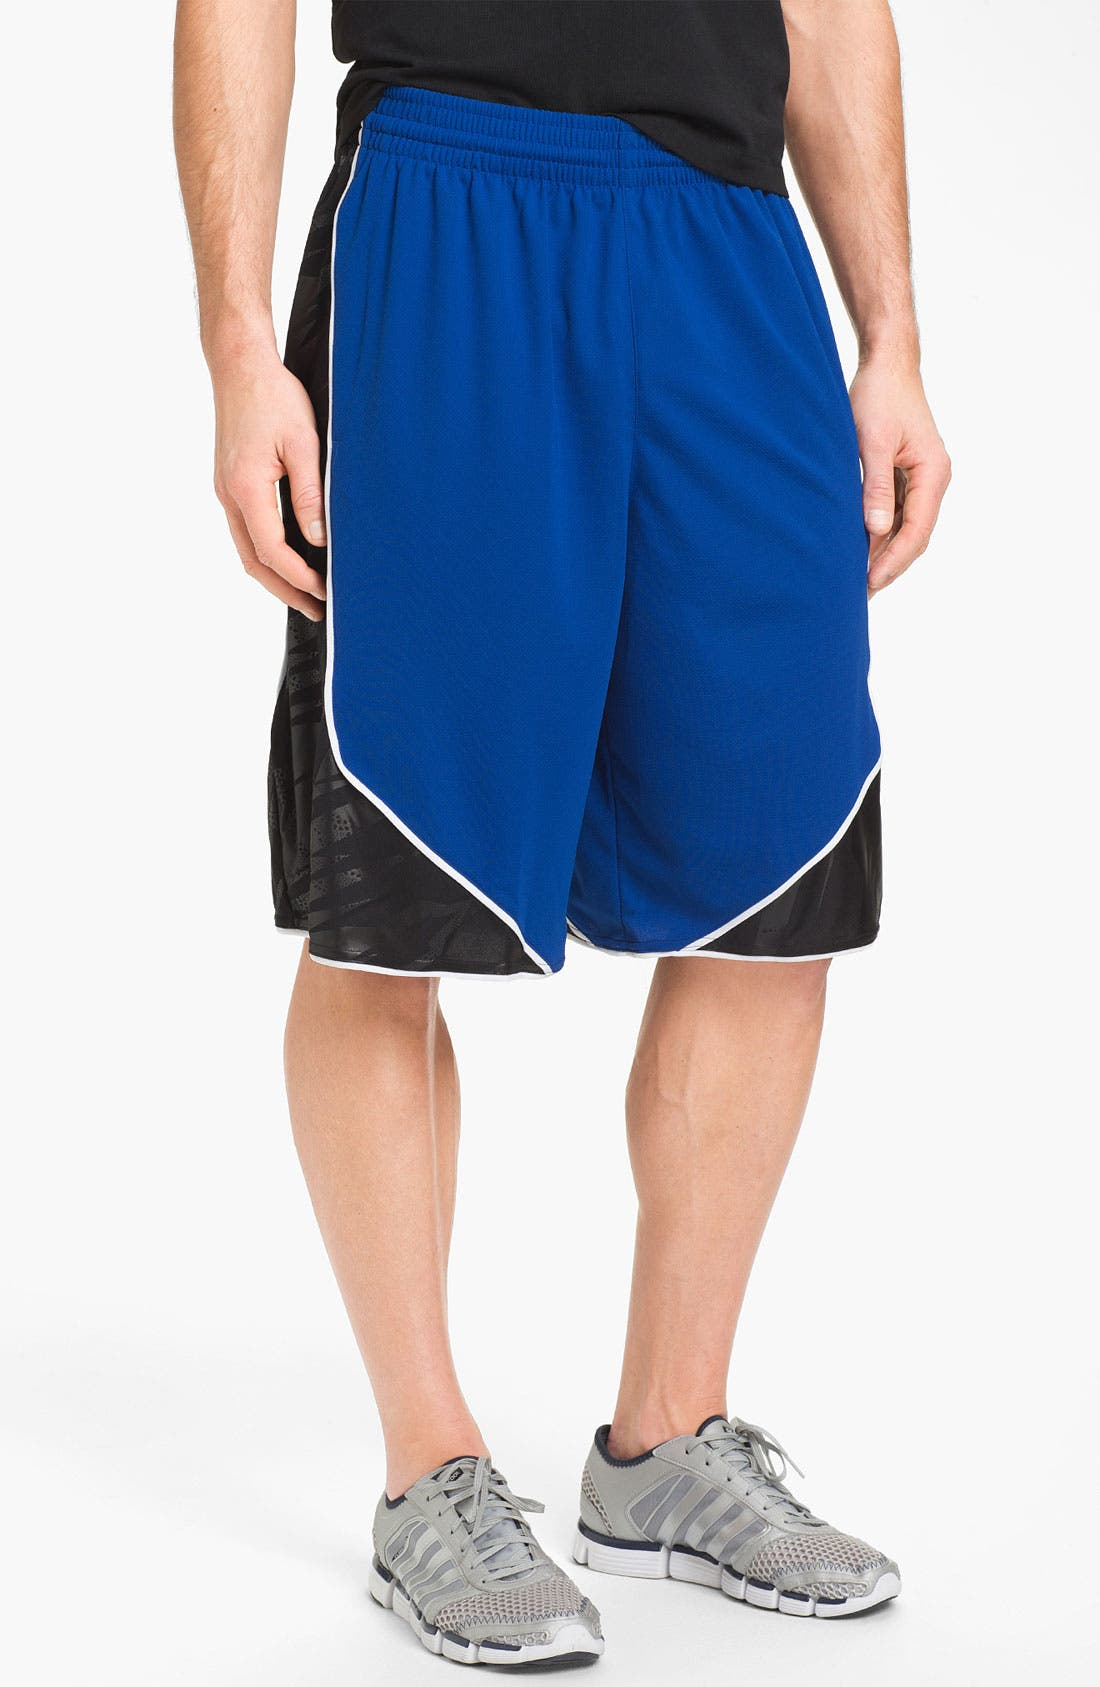 Alternate Image 1 Selected - adidas 'Alive 3.0' Shorts